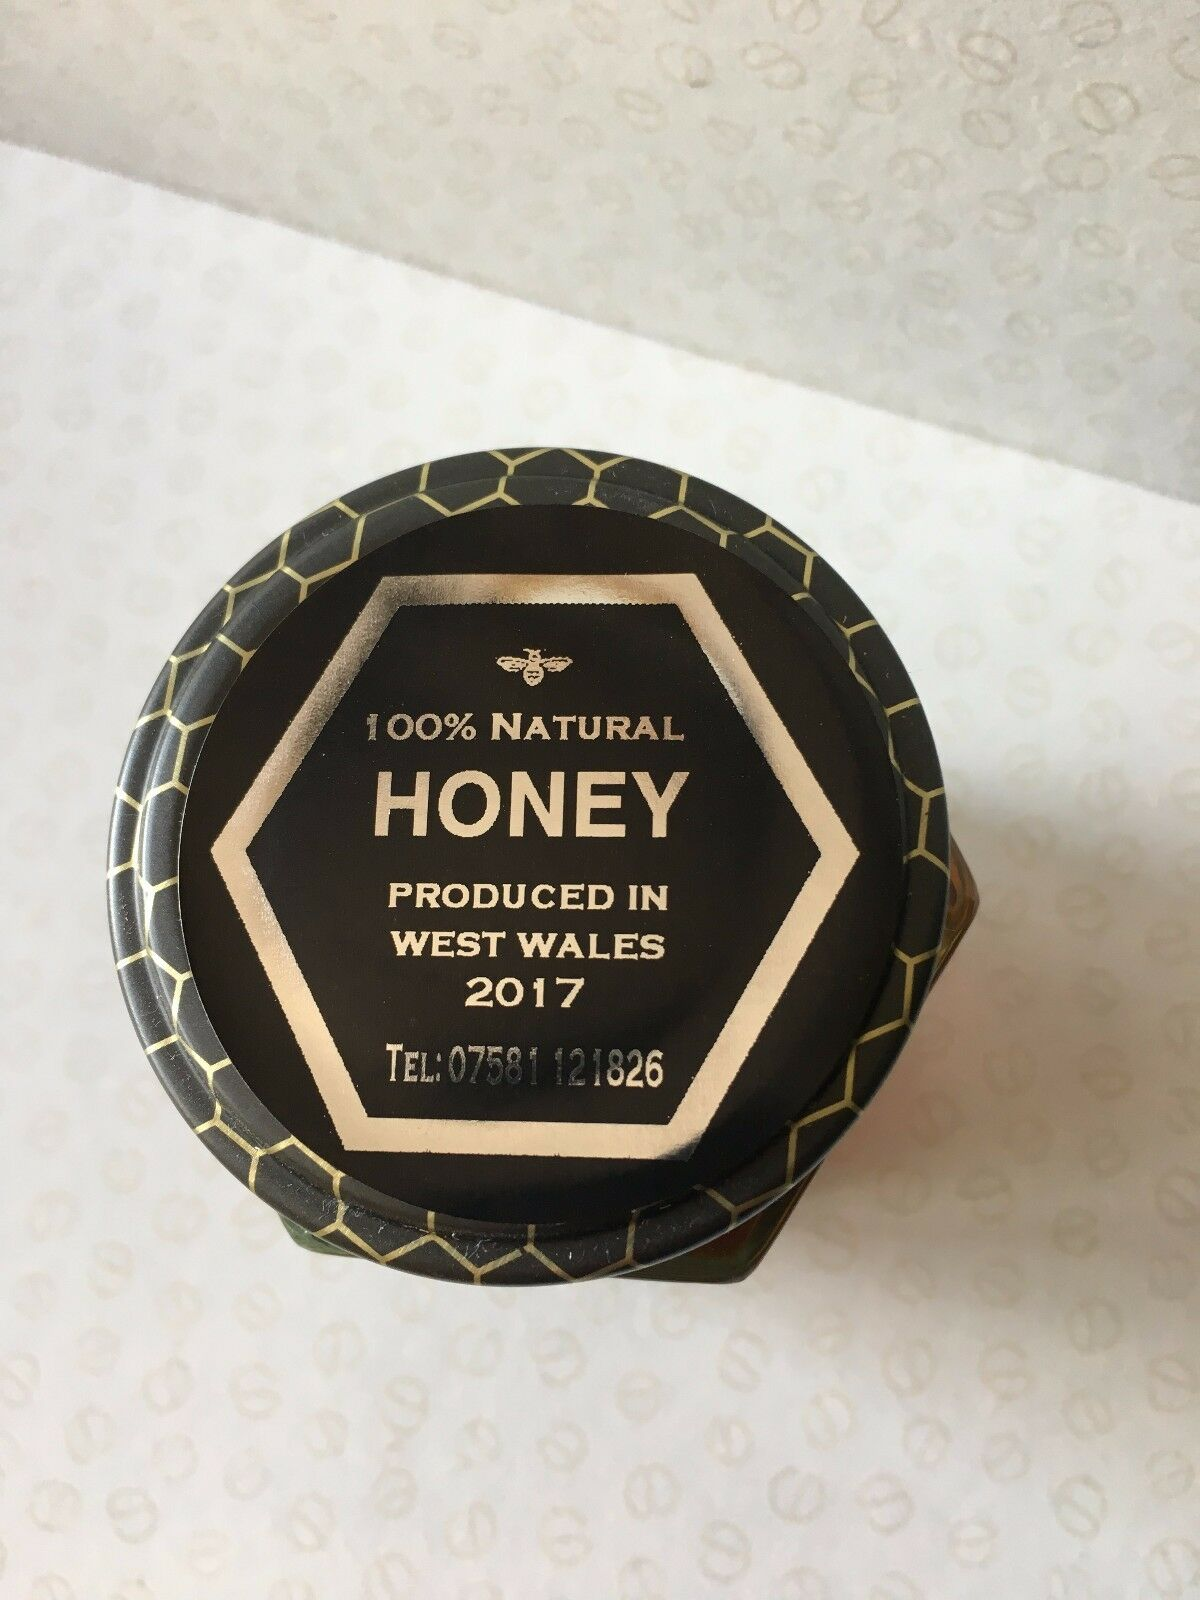 Details about honey jar labels metallic gold silver round labels personalised self adhesive